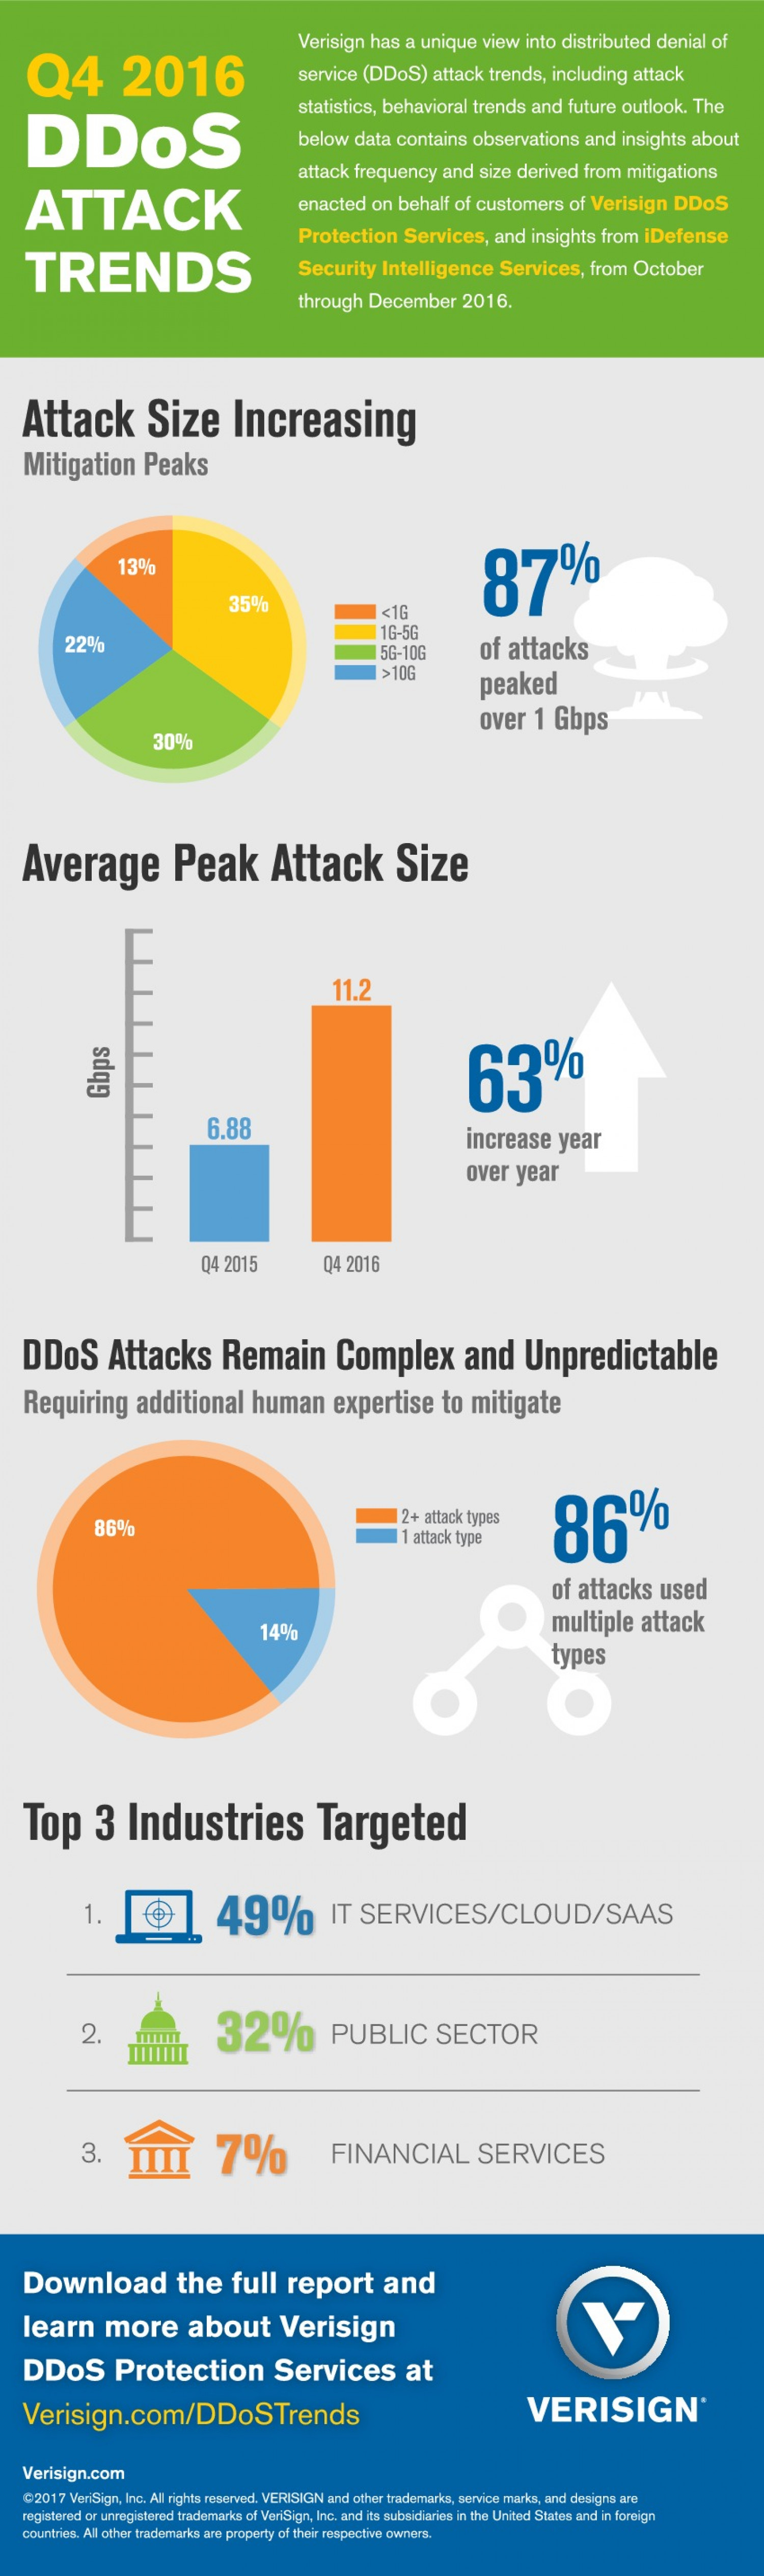 Q4 2016 DDoS Trends Report Infographic